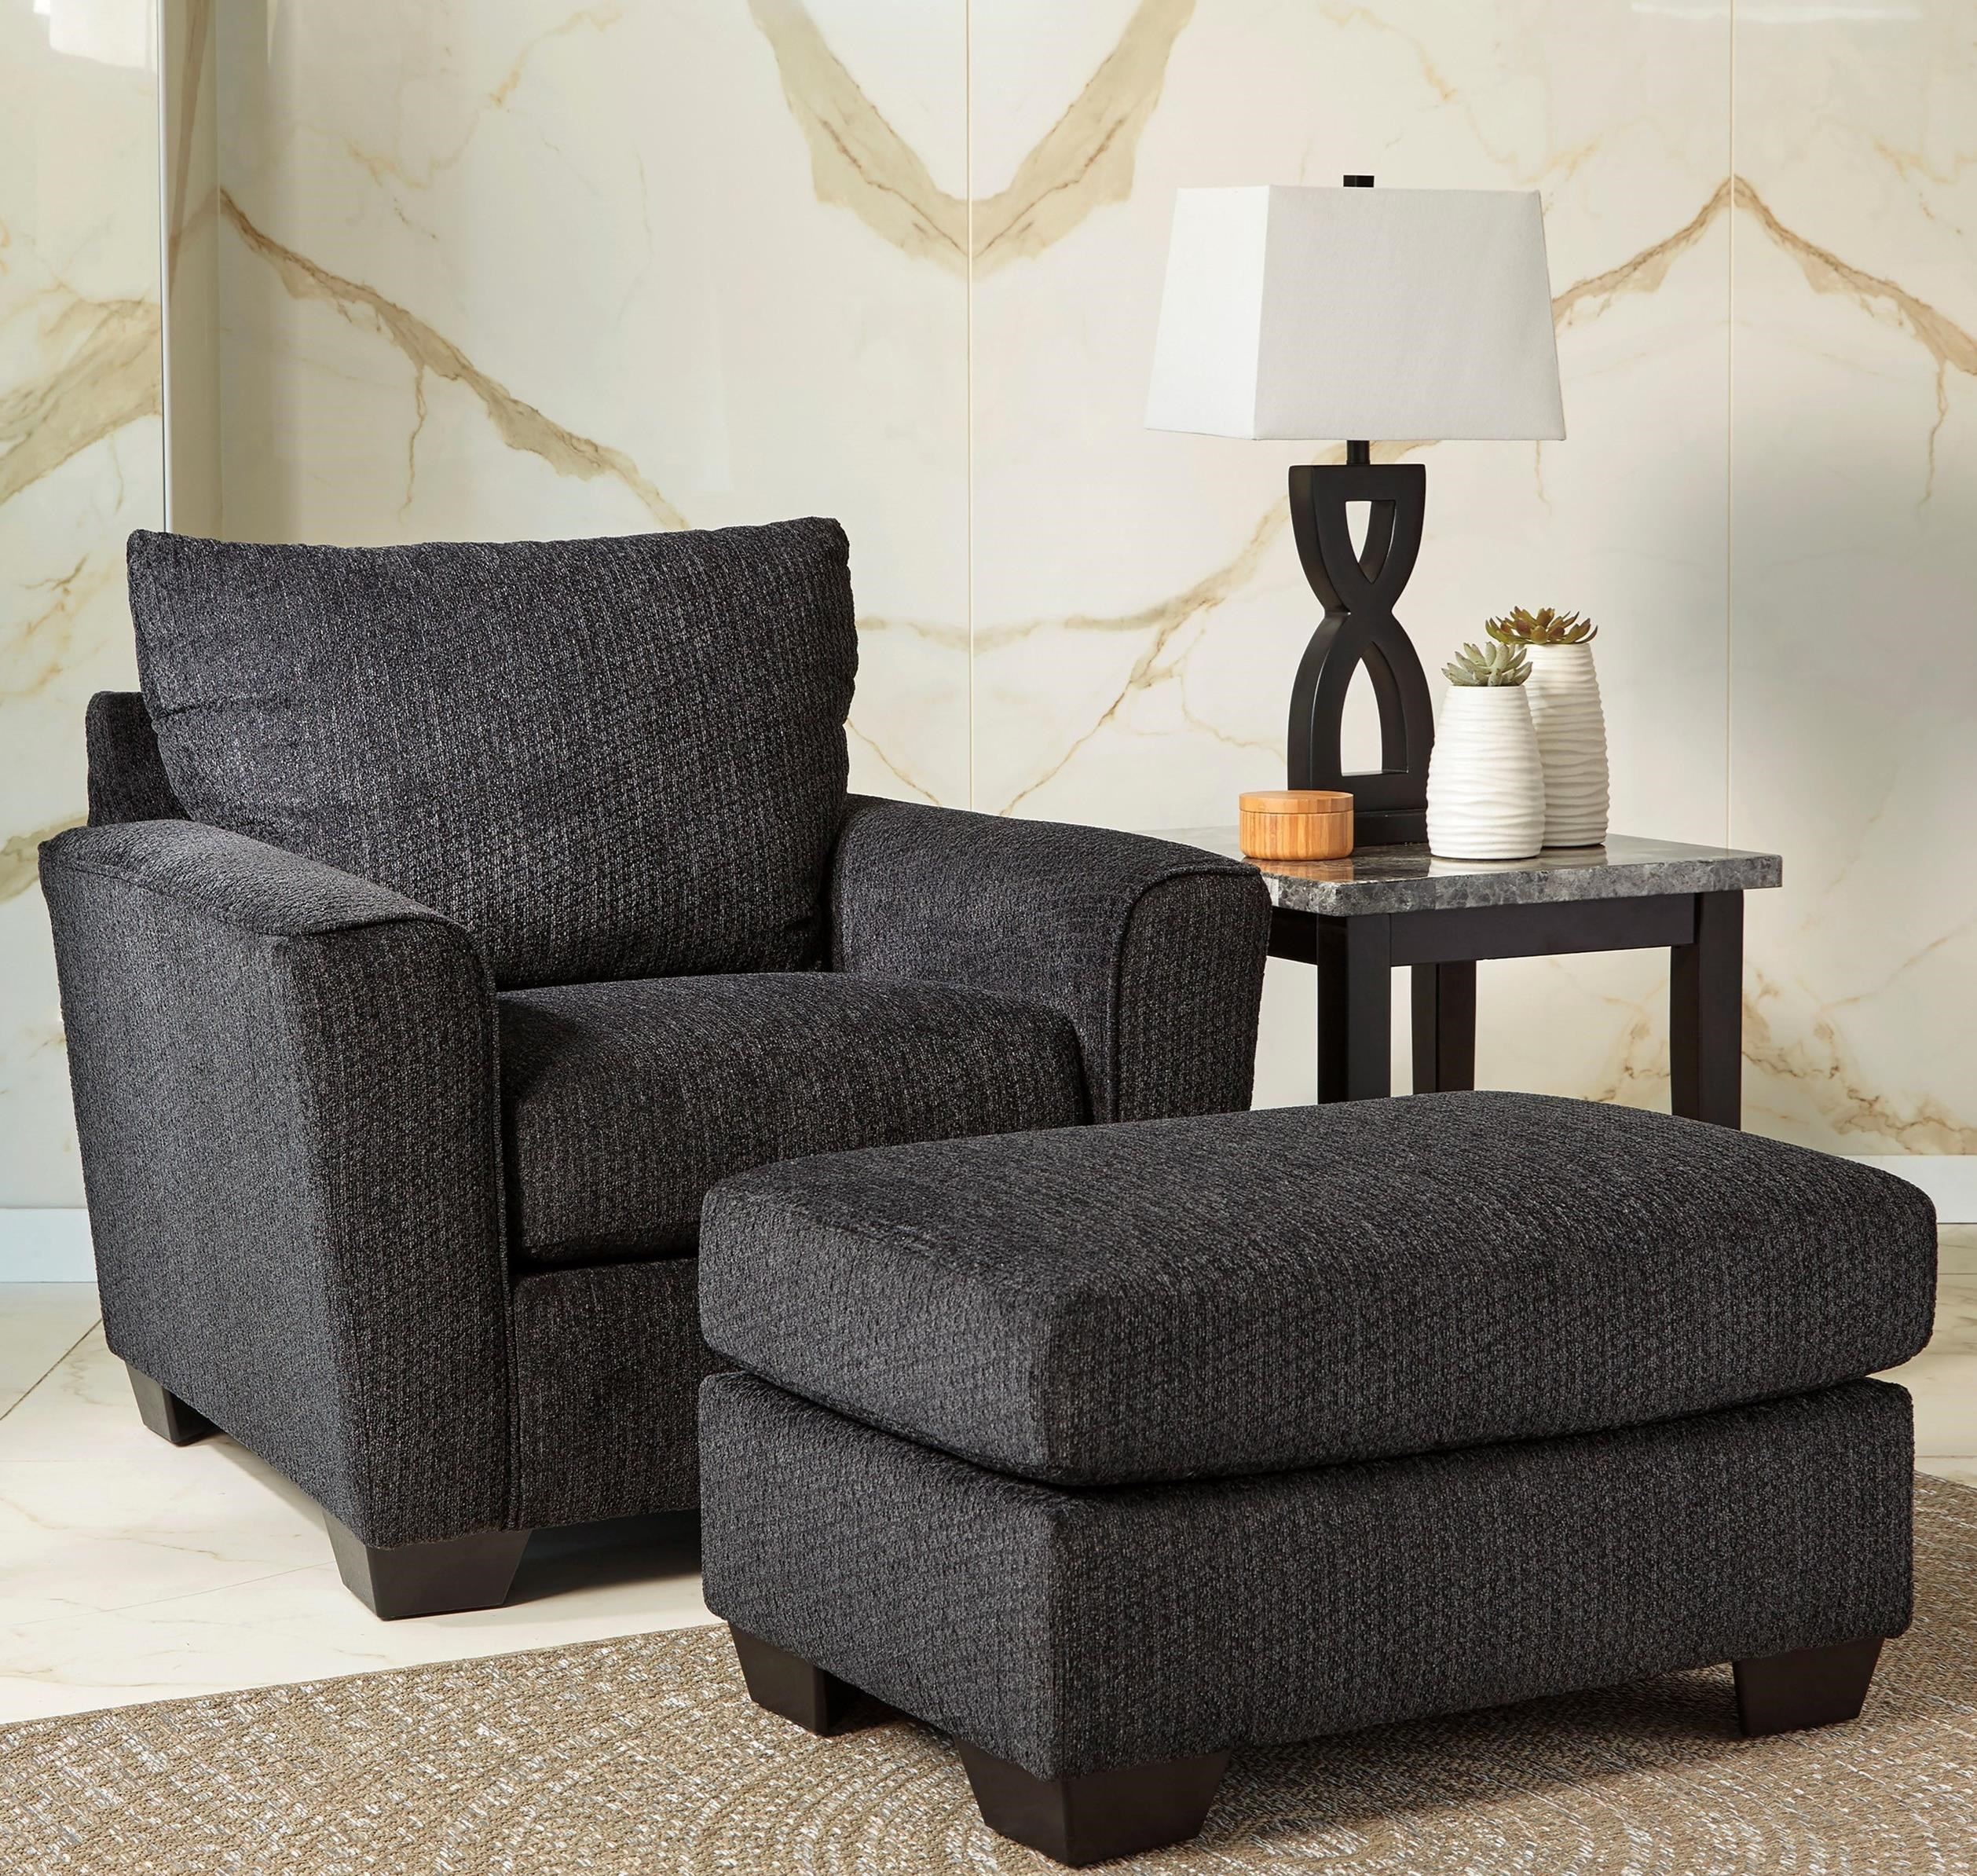 Wixon Chair & Ottoman by Benchcraft at Walker's Furniture